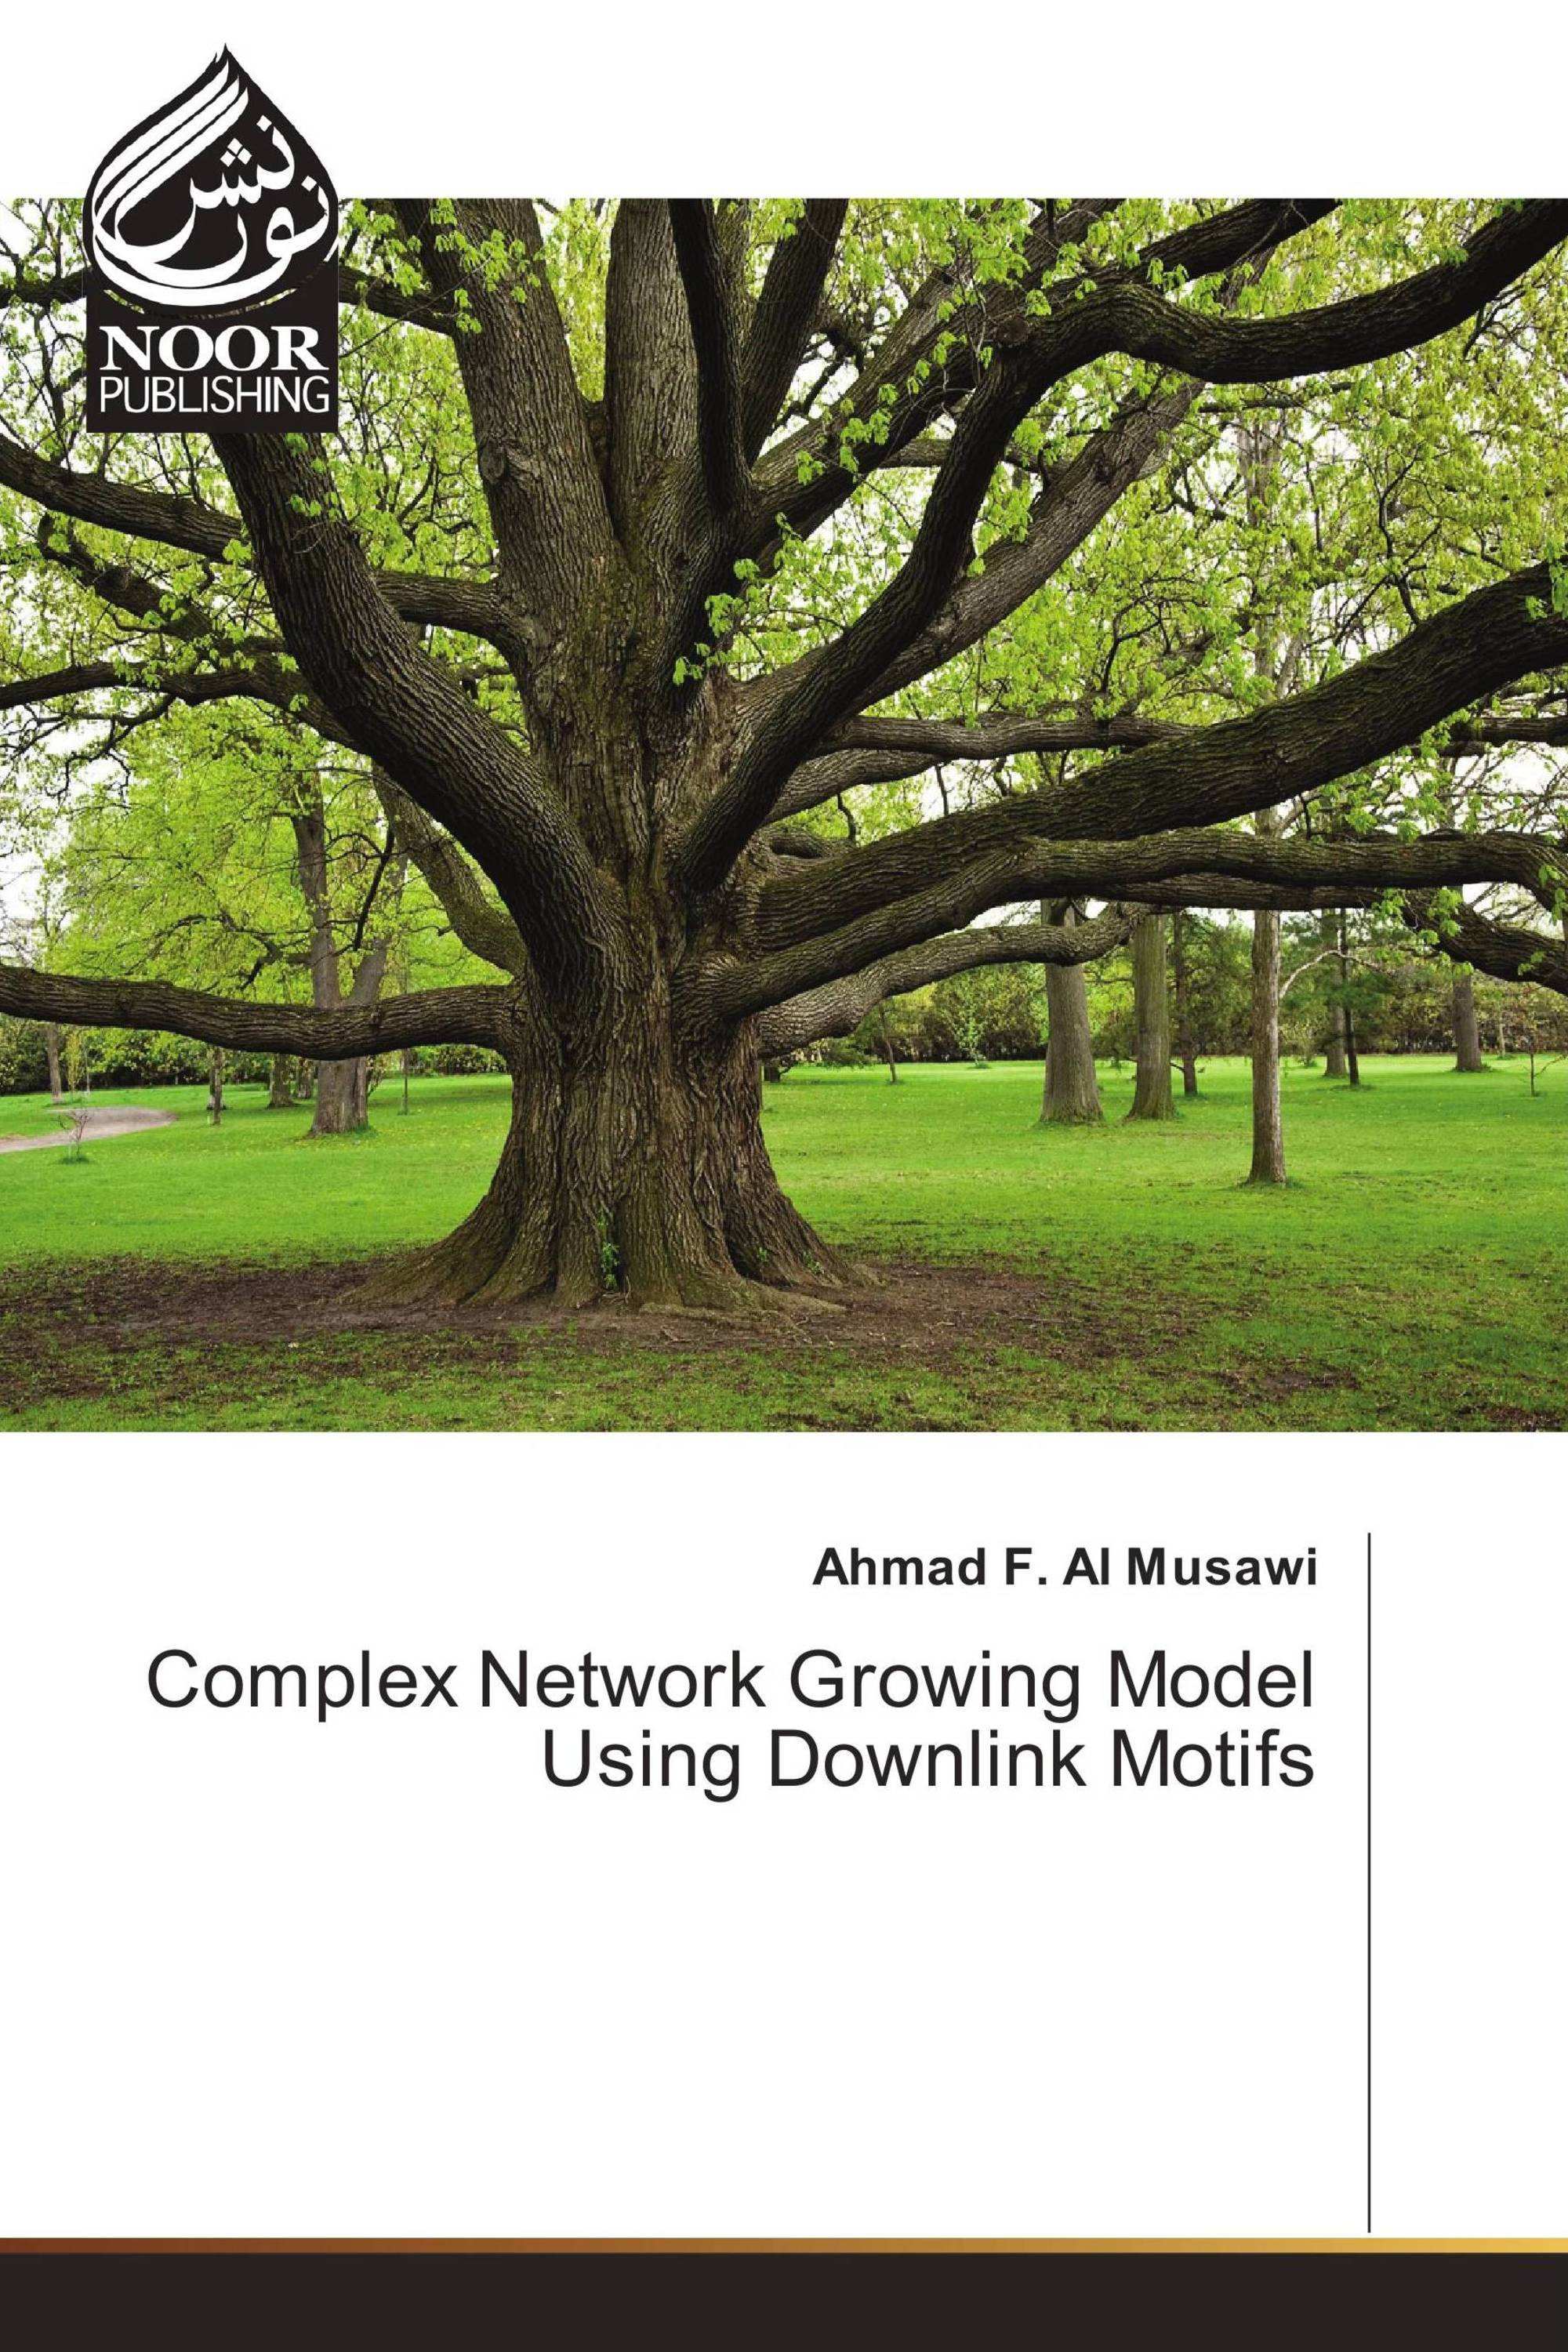 Complex Network Growing Model Using Downlink Motifs